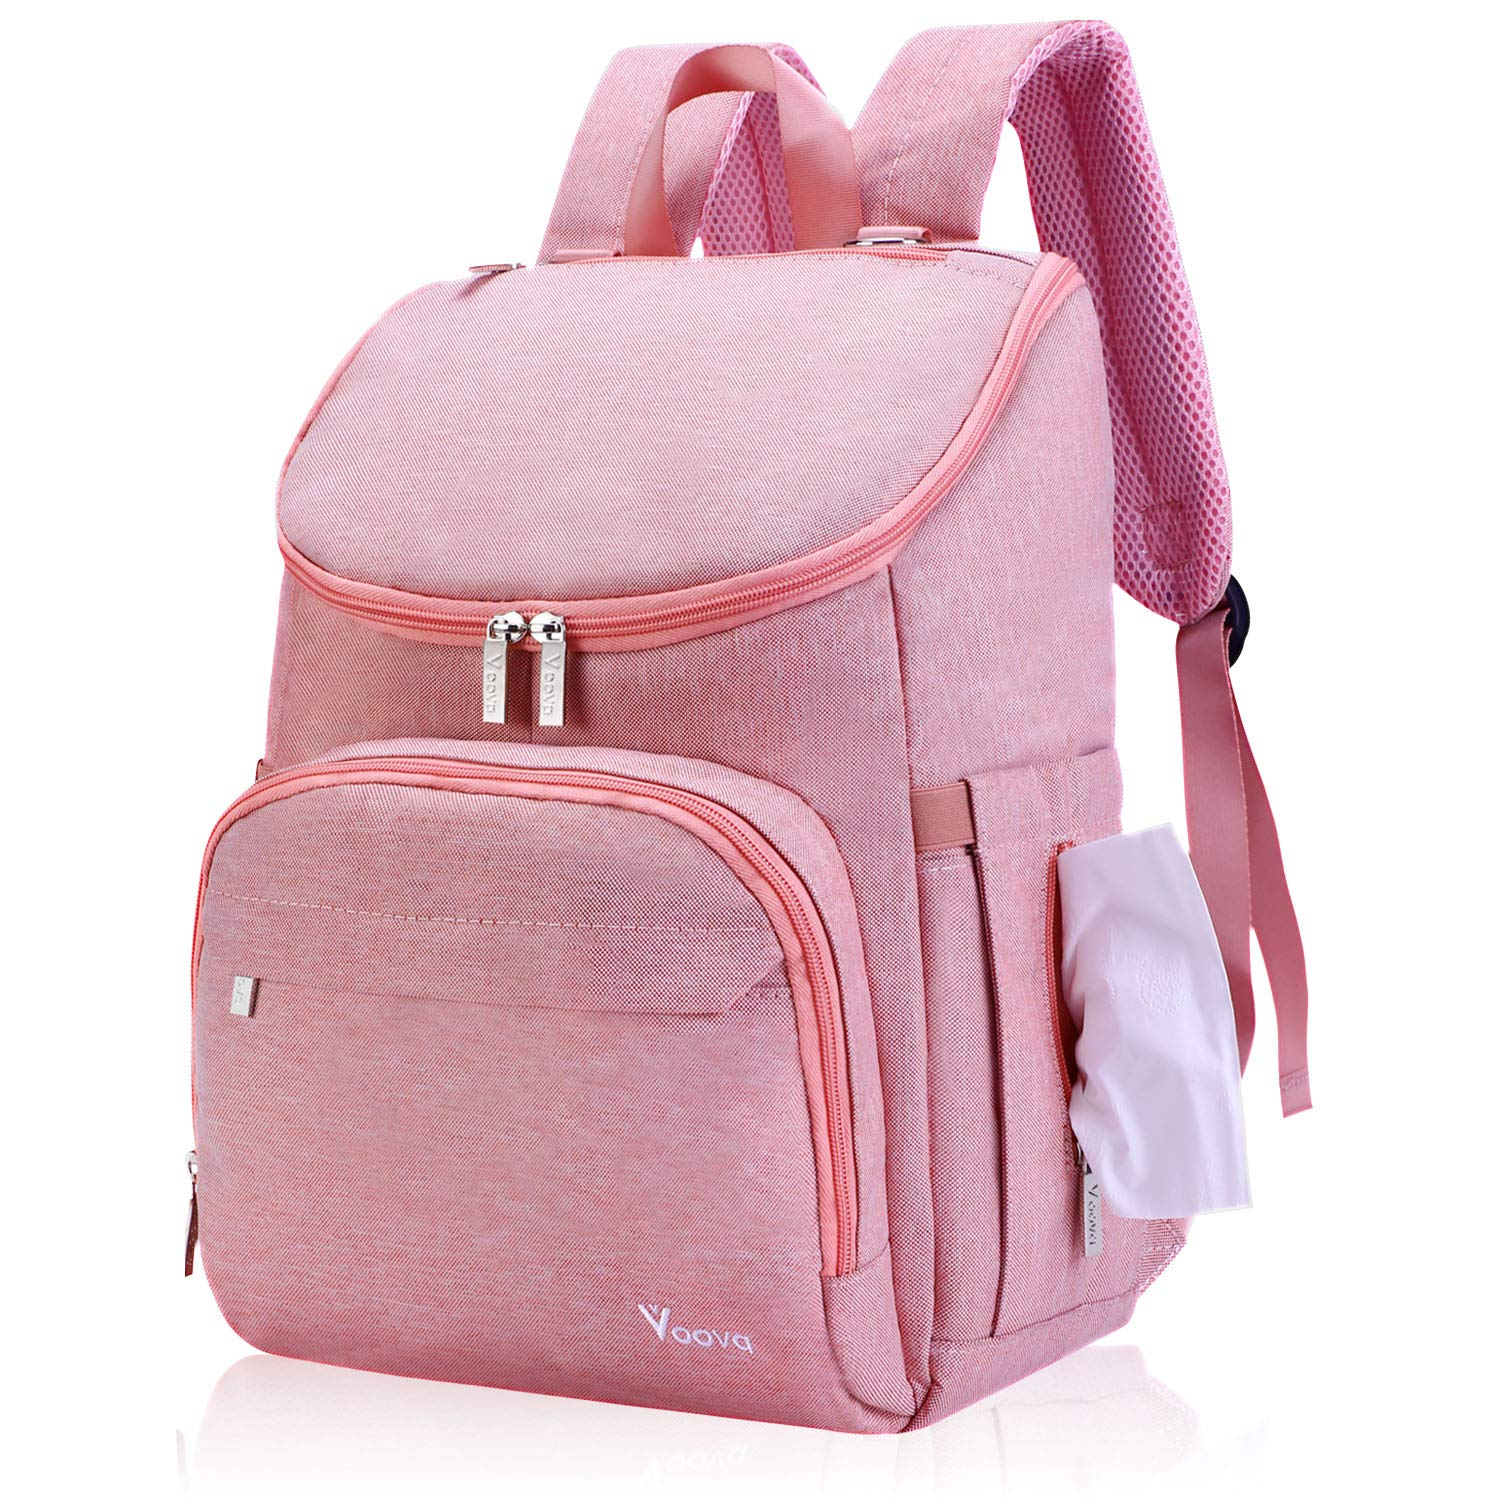 Diaper Bag Backpack, Voova Large Travel Baby Bag Back Pack for Baby Boy Gril, Mom and Women, Stylish Waterproof Maternity Nappy Bags with Changing Pad, Thermal Pockets,Stroller Straps, Pink